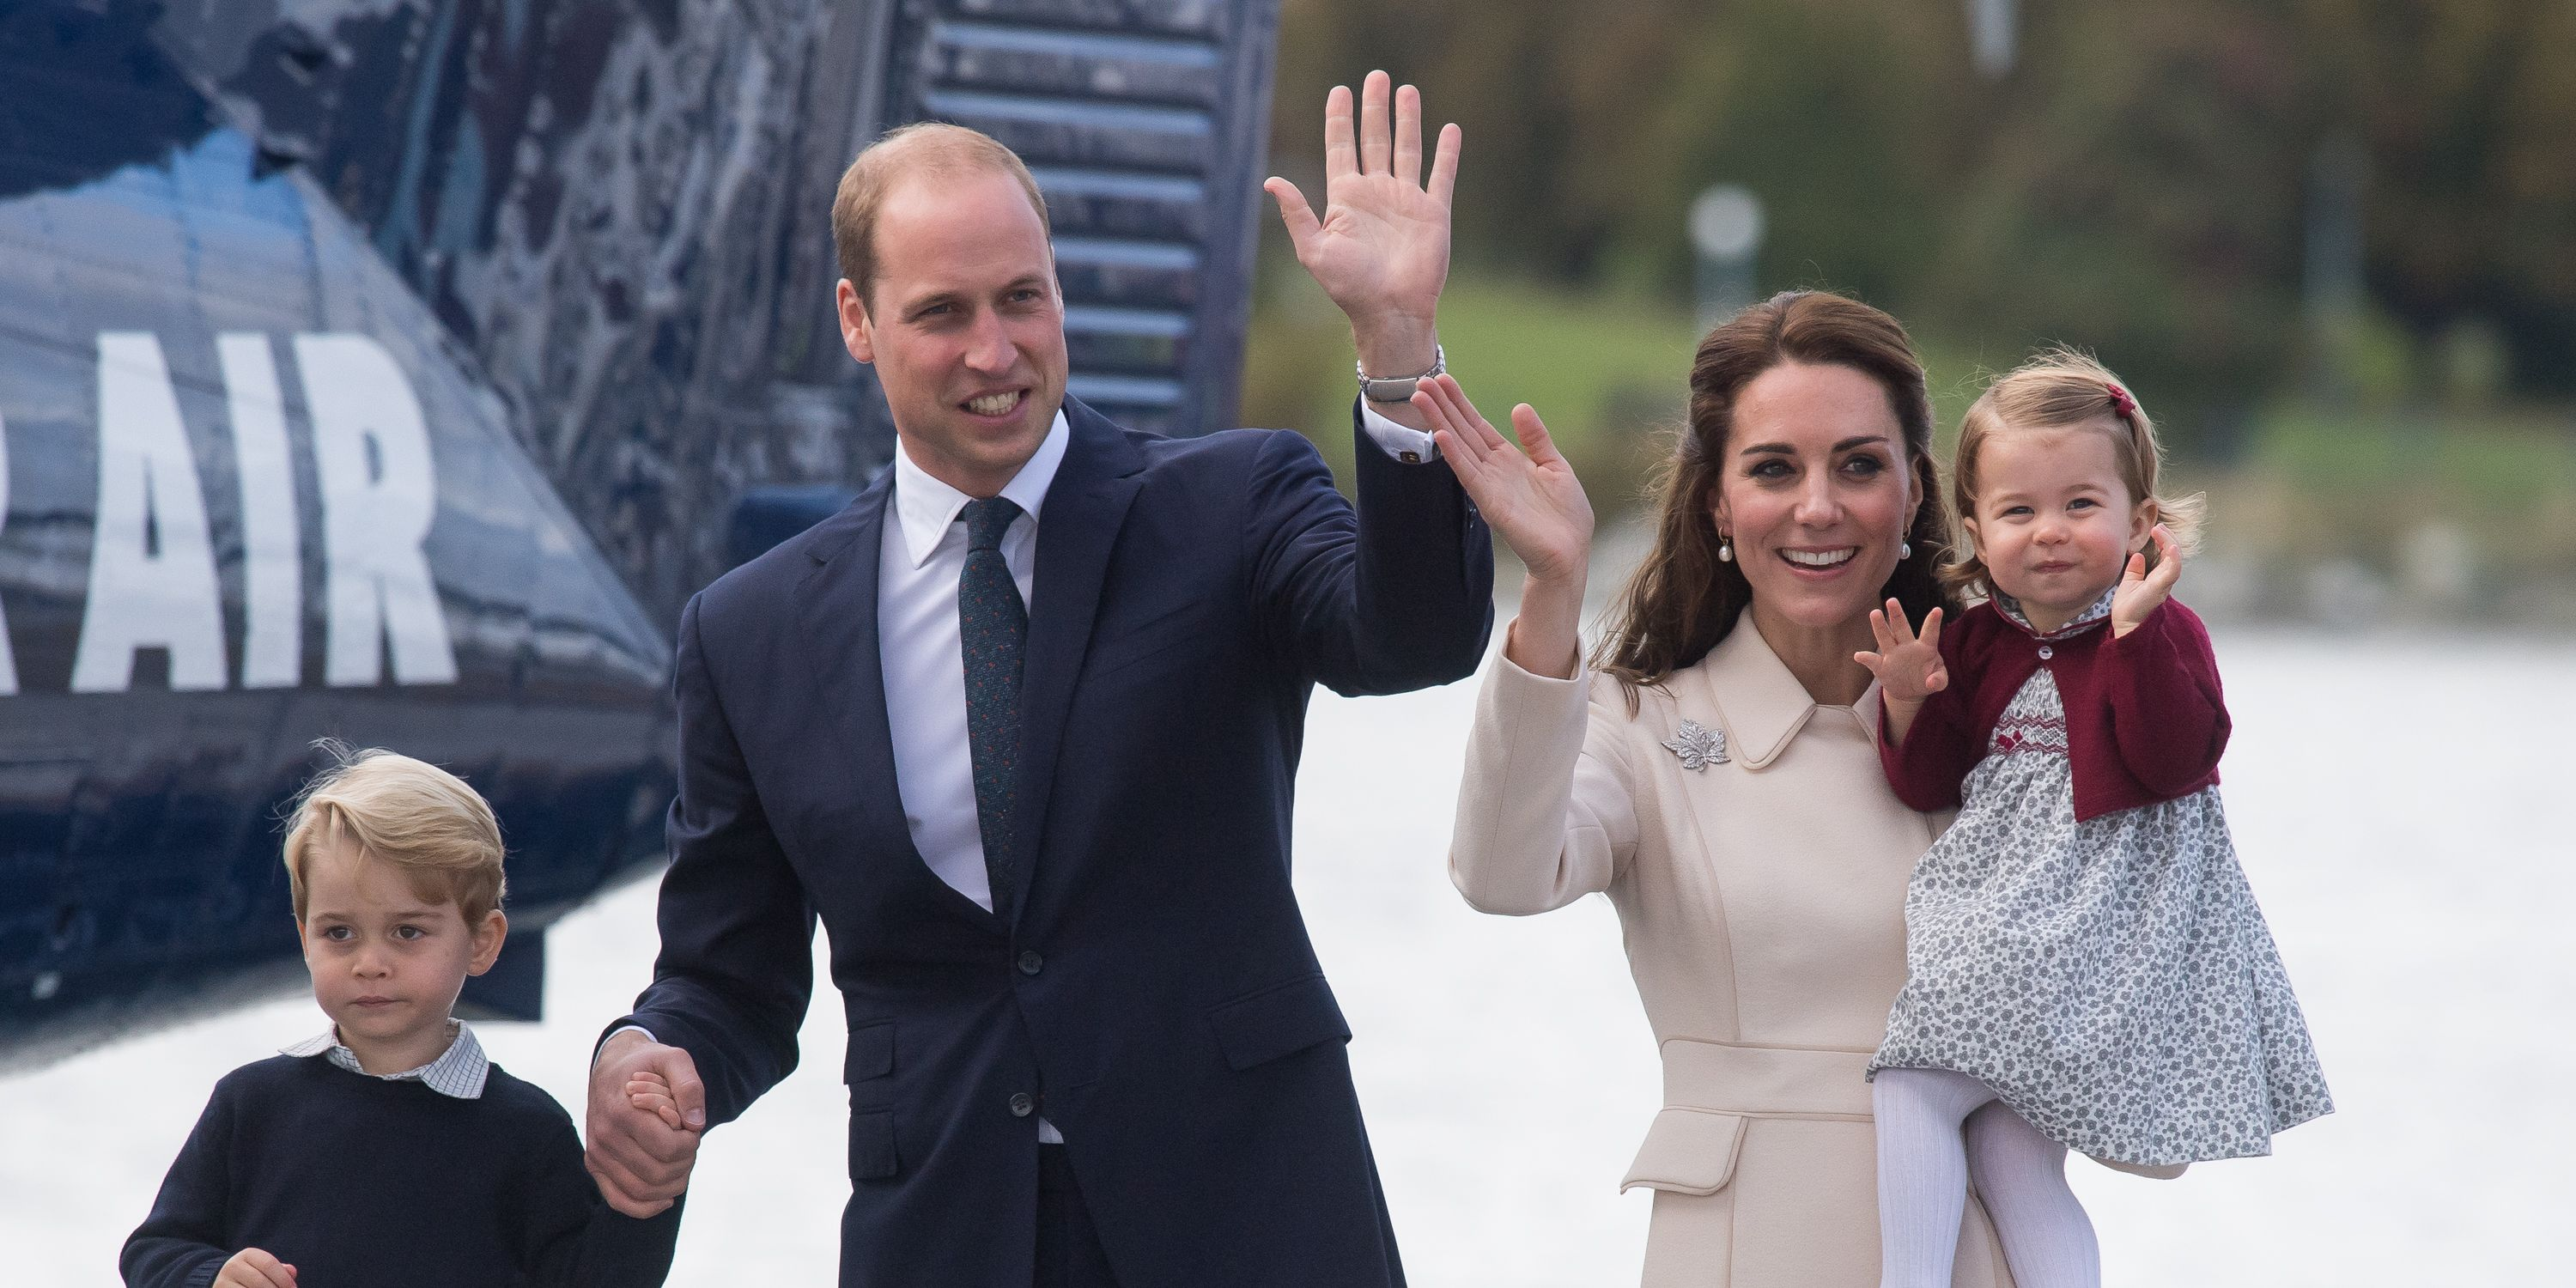 Prince George, Prince William, Duchess Kate, Princess Charlotte